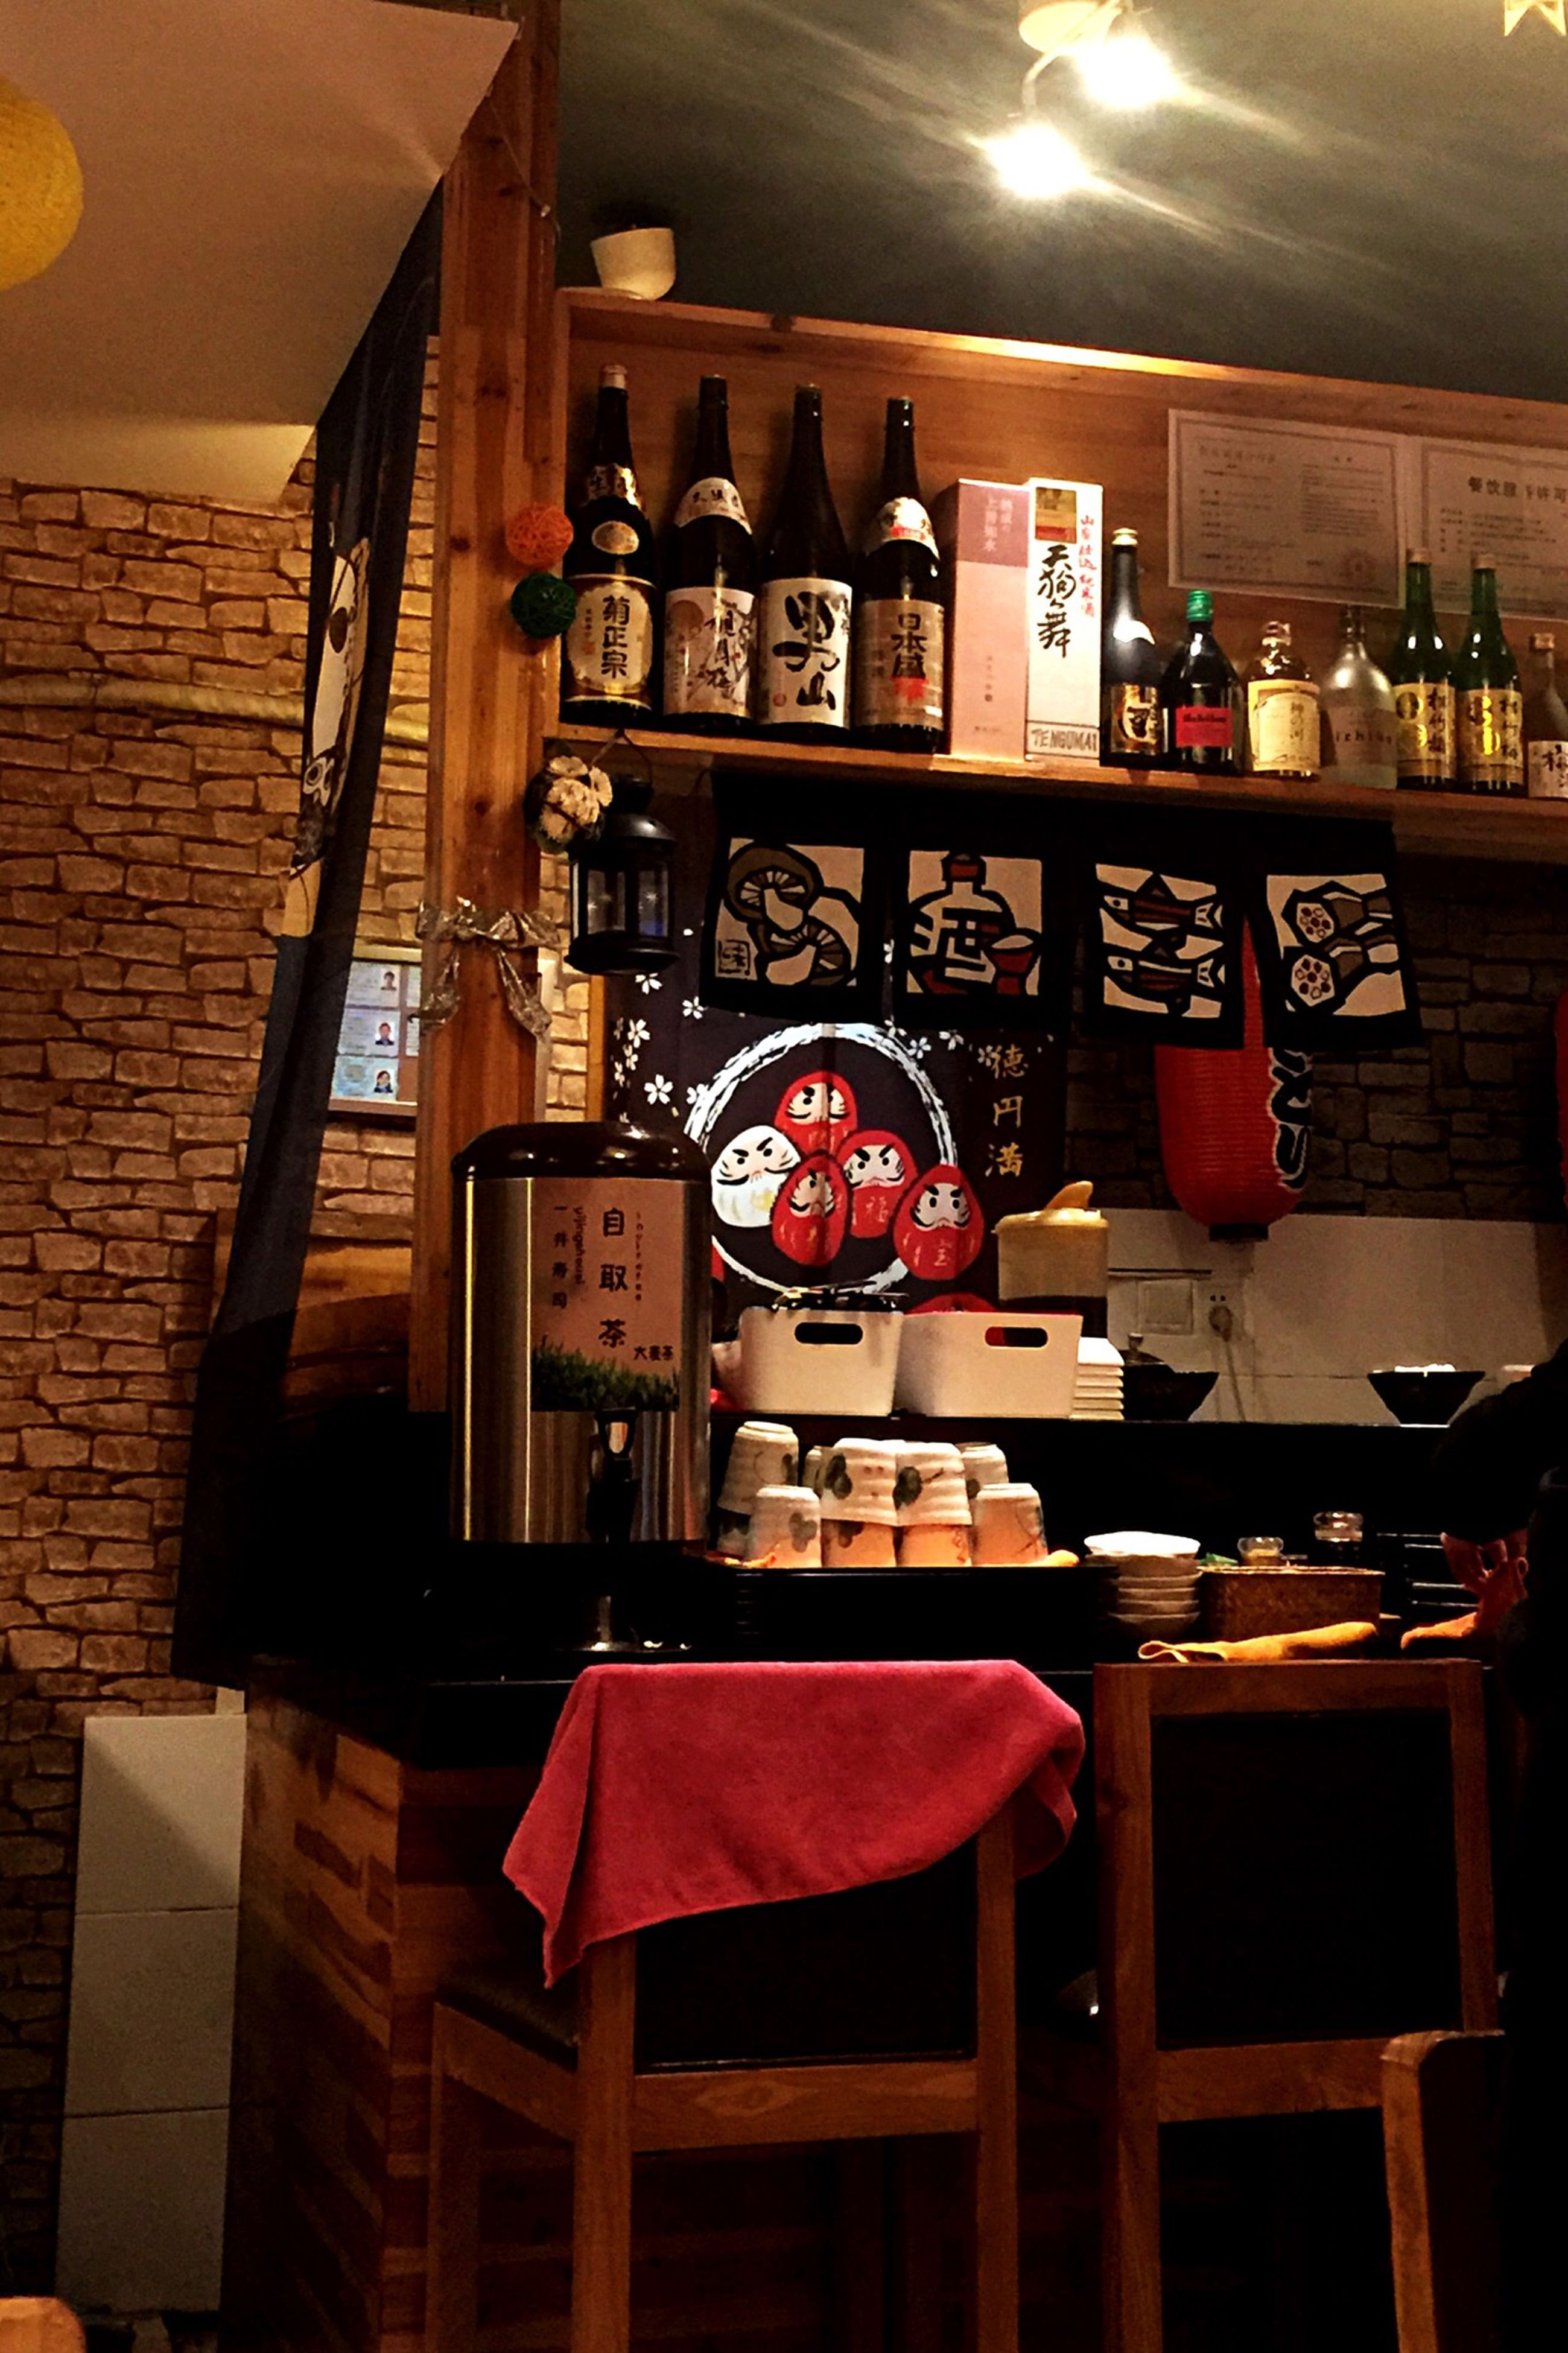 indoors, table, chair, architecture, built structure, restaurant, absence, illuminated, window, home interior, hanging, house, no people, red, lighting equipment, still life, electric lamp, wood - material, shelf, building exterior